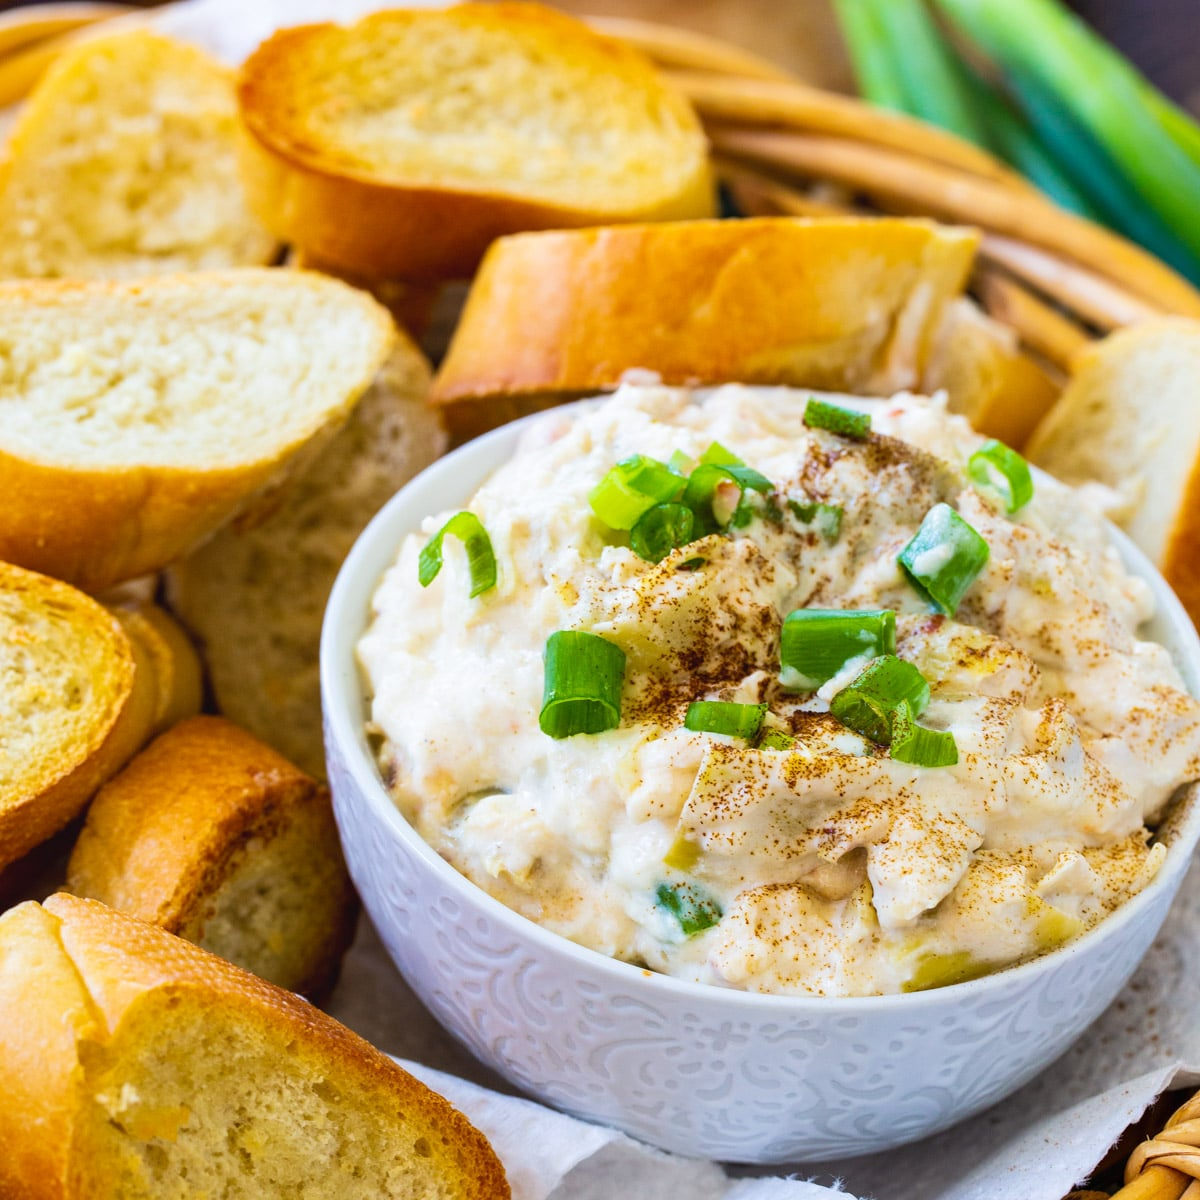 Crock Pot Crab Artichoke Dip in bowl surrounded by toasted baguette slices.